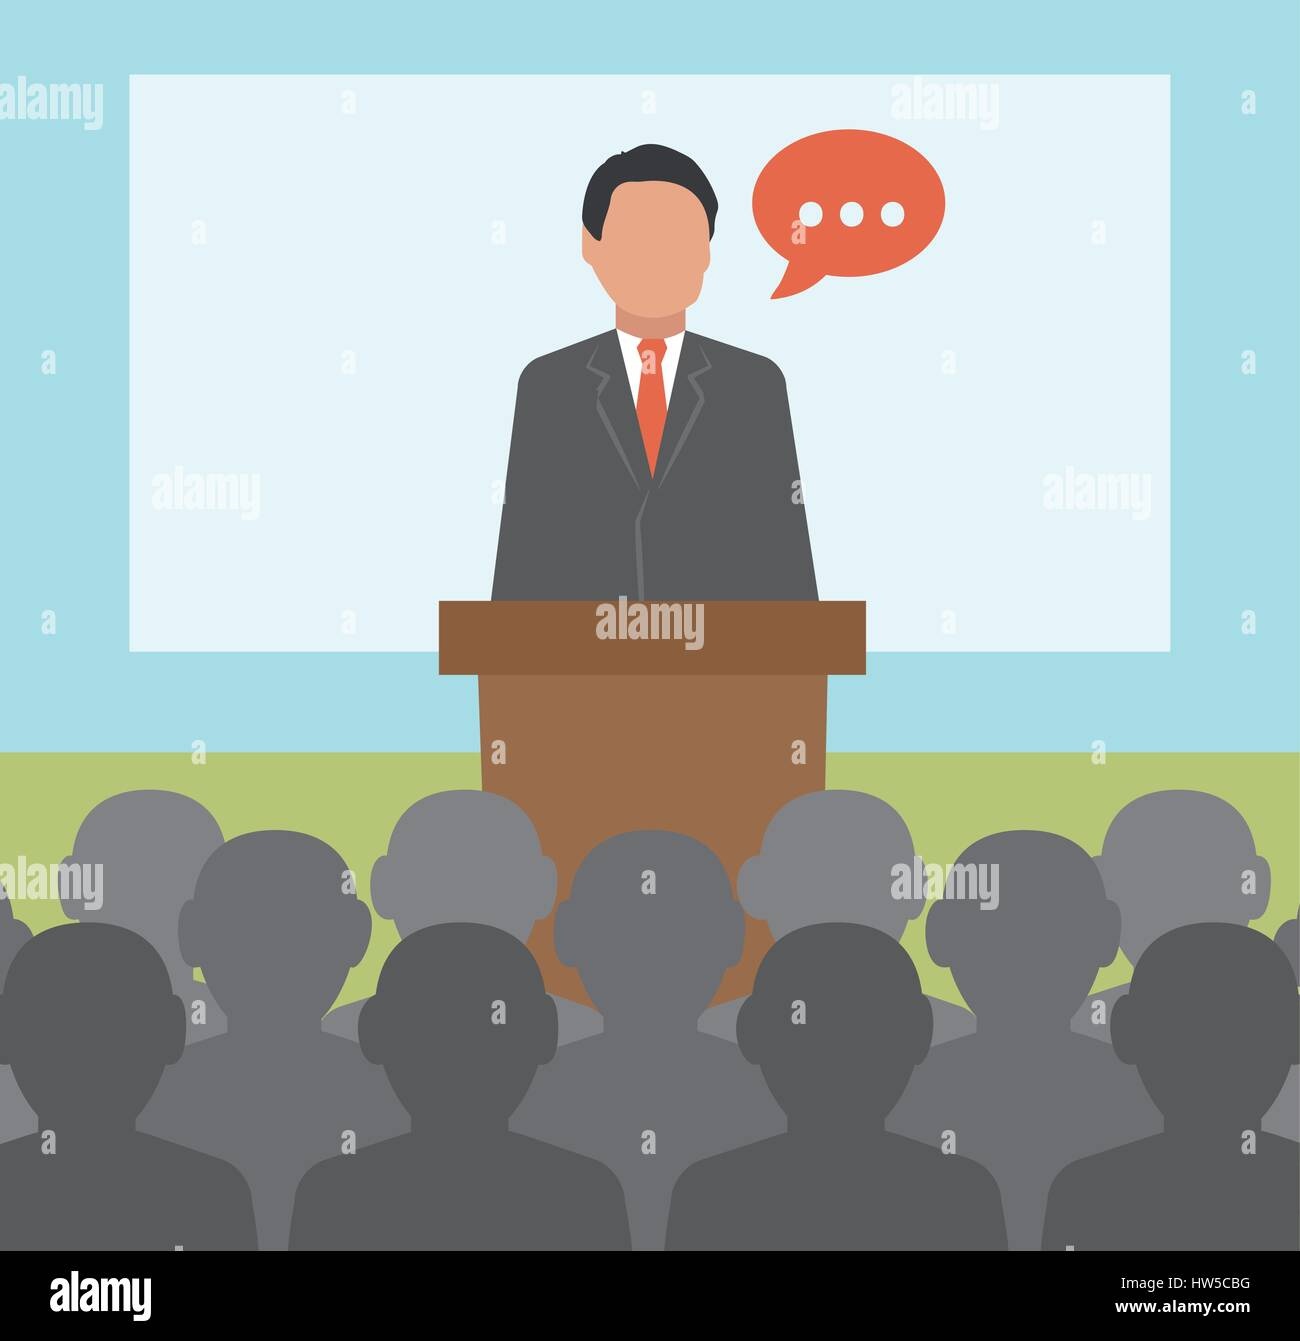 Conférence. Business concept illustration Photo Stock